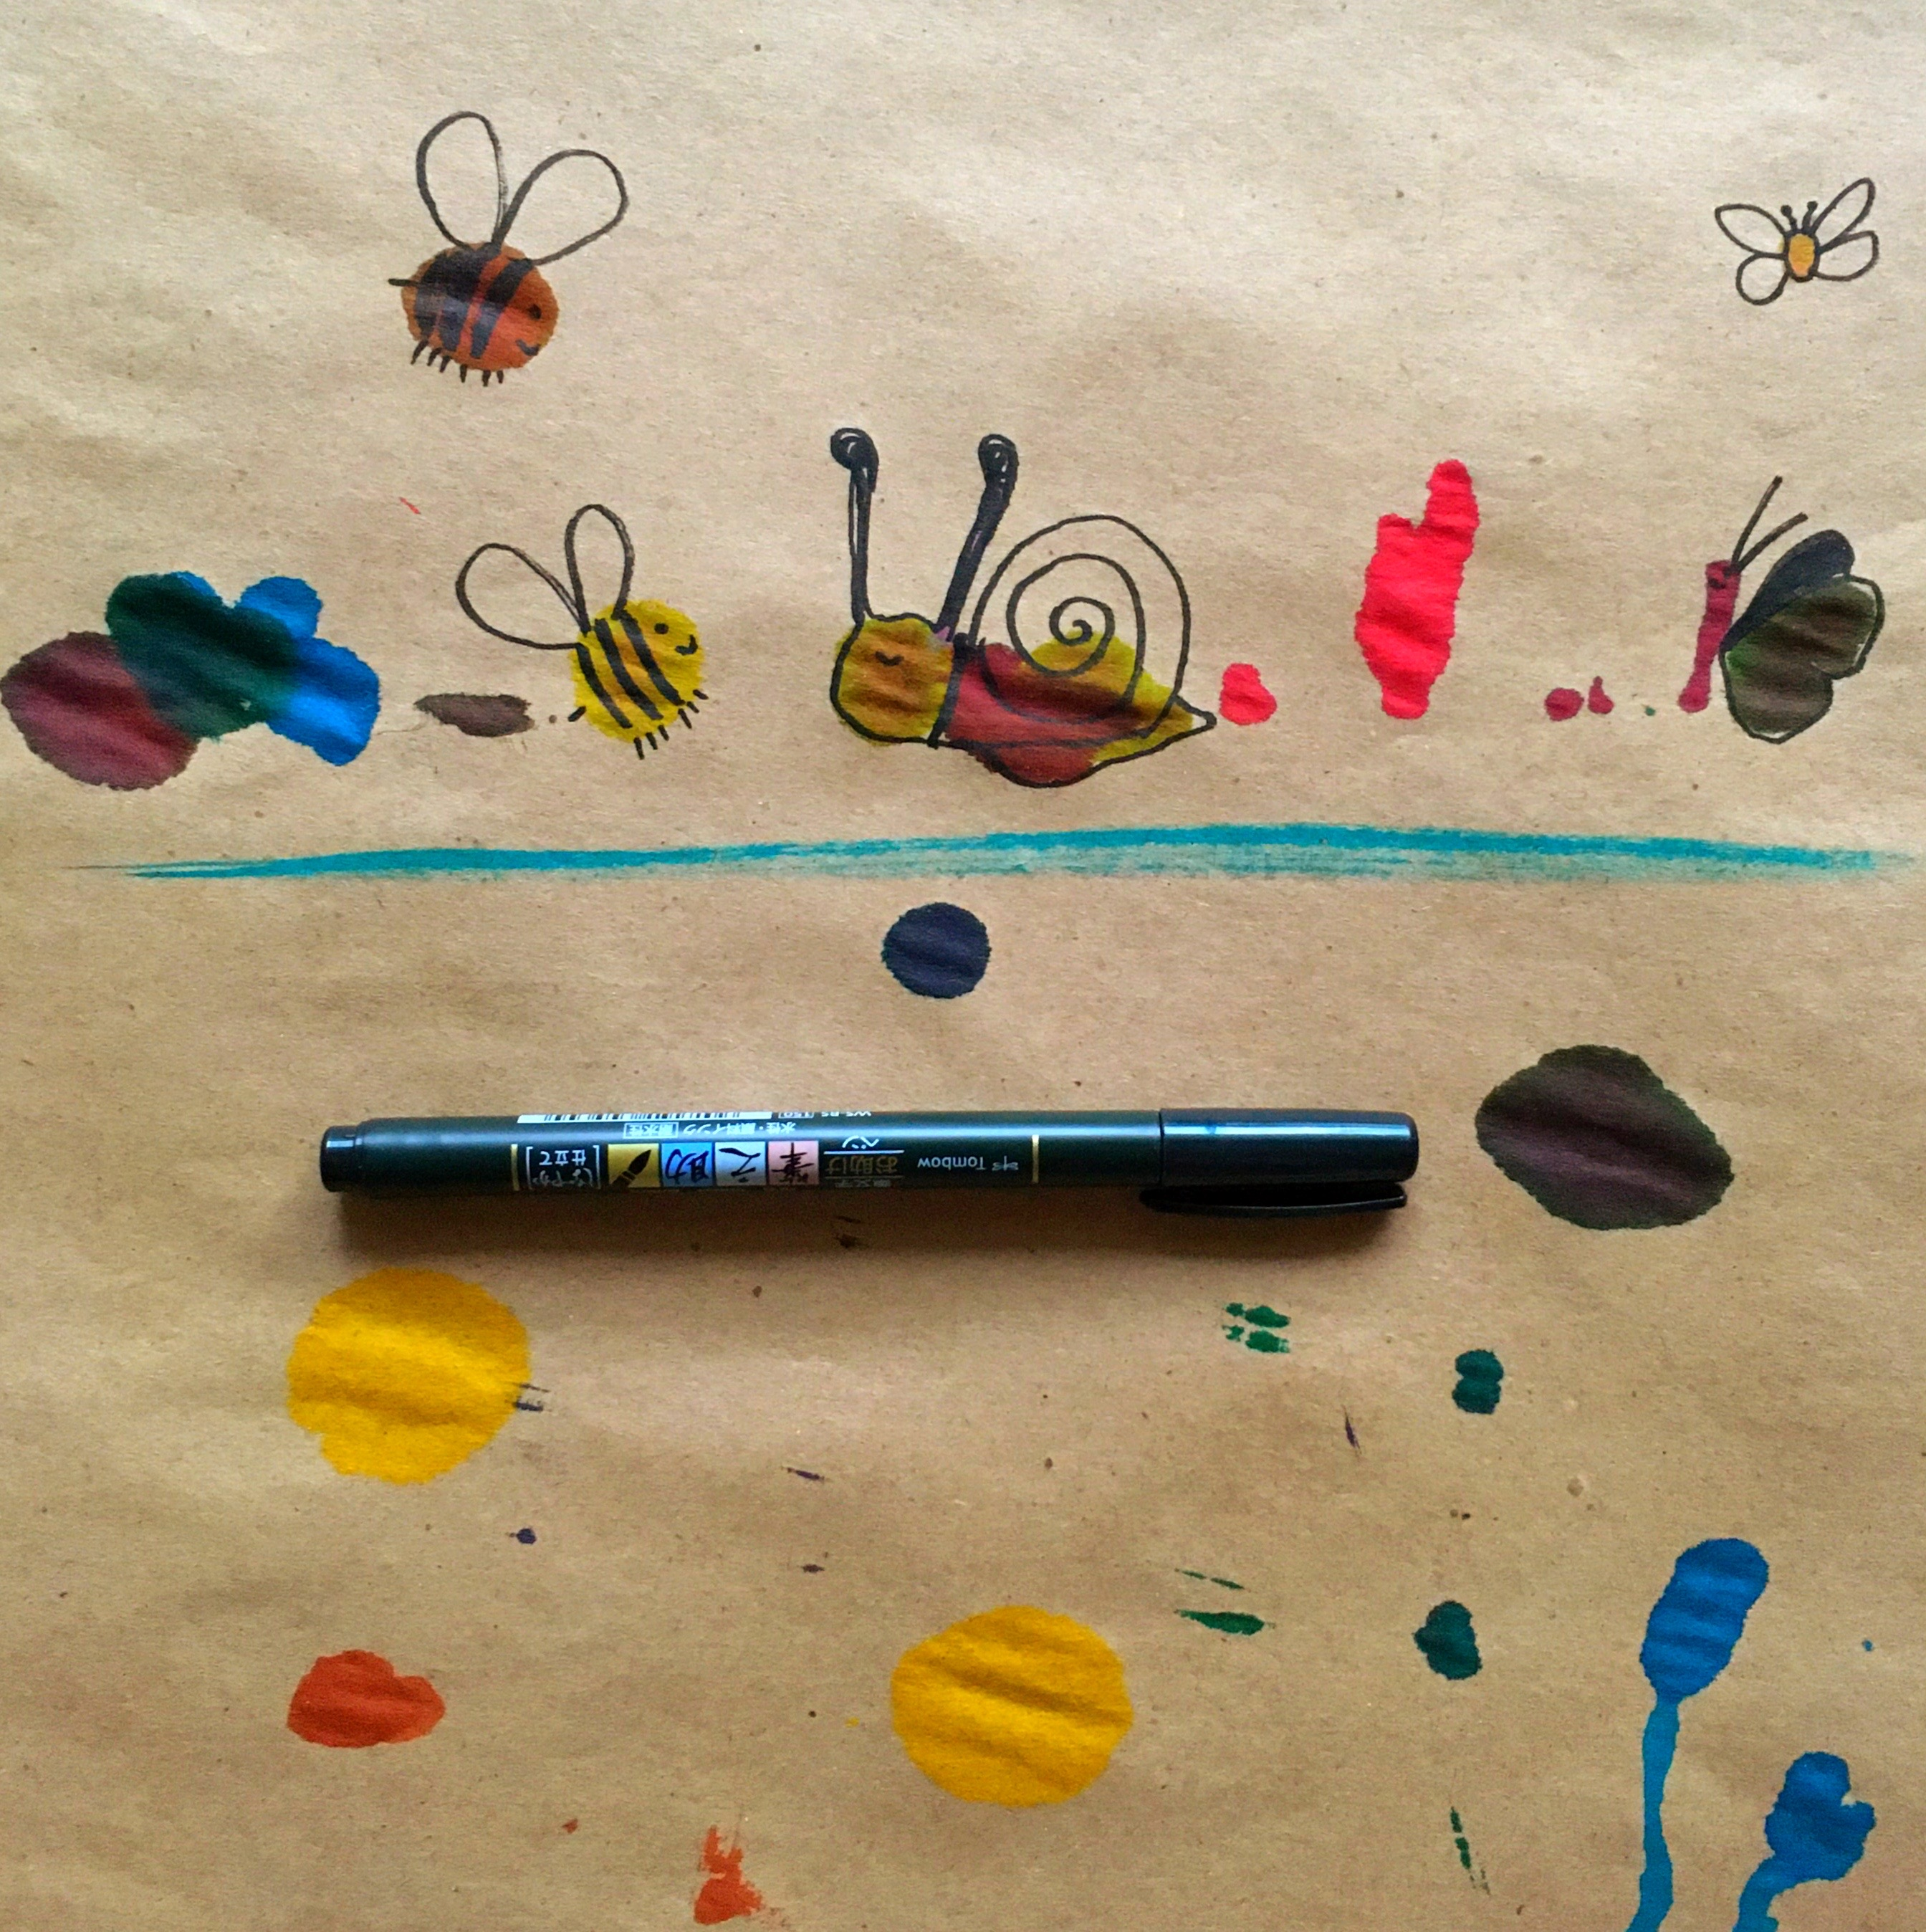 doodles of bugs made from paint splatters on craft paper